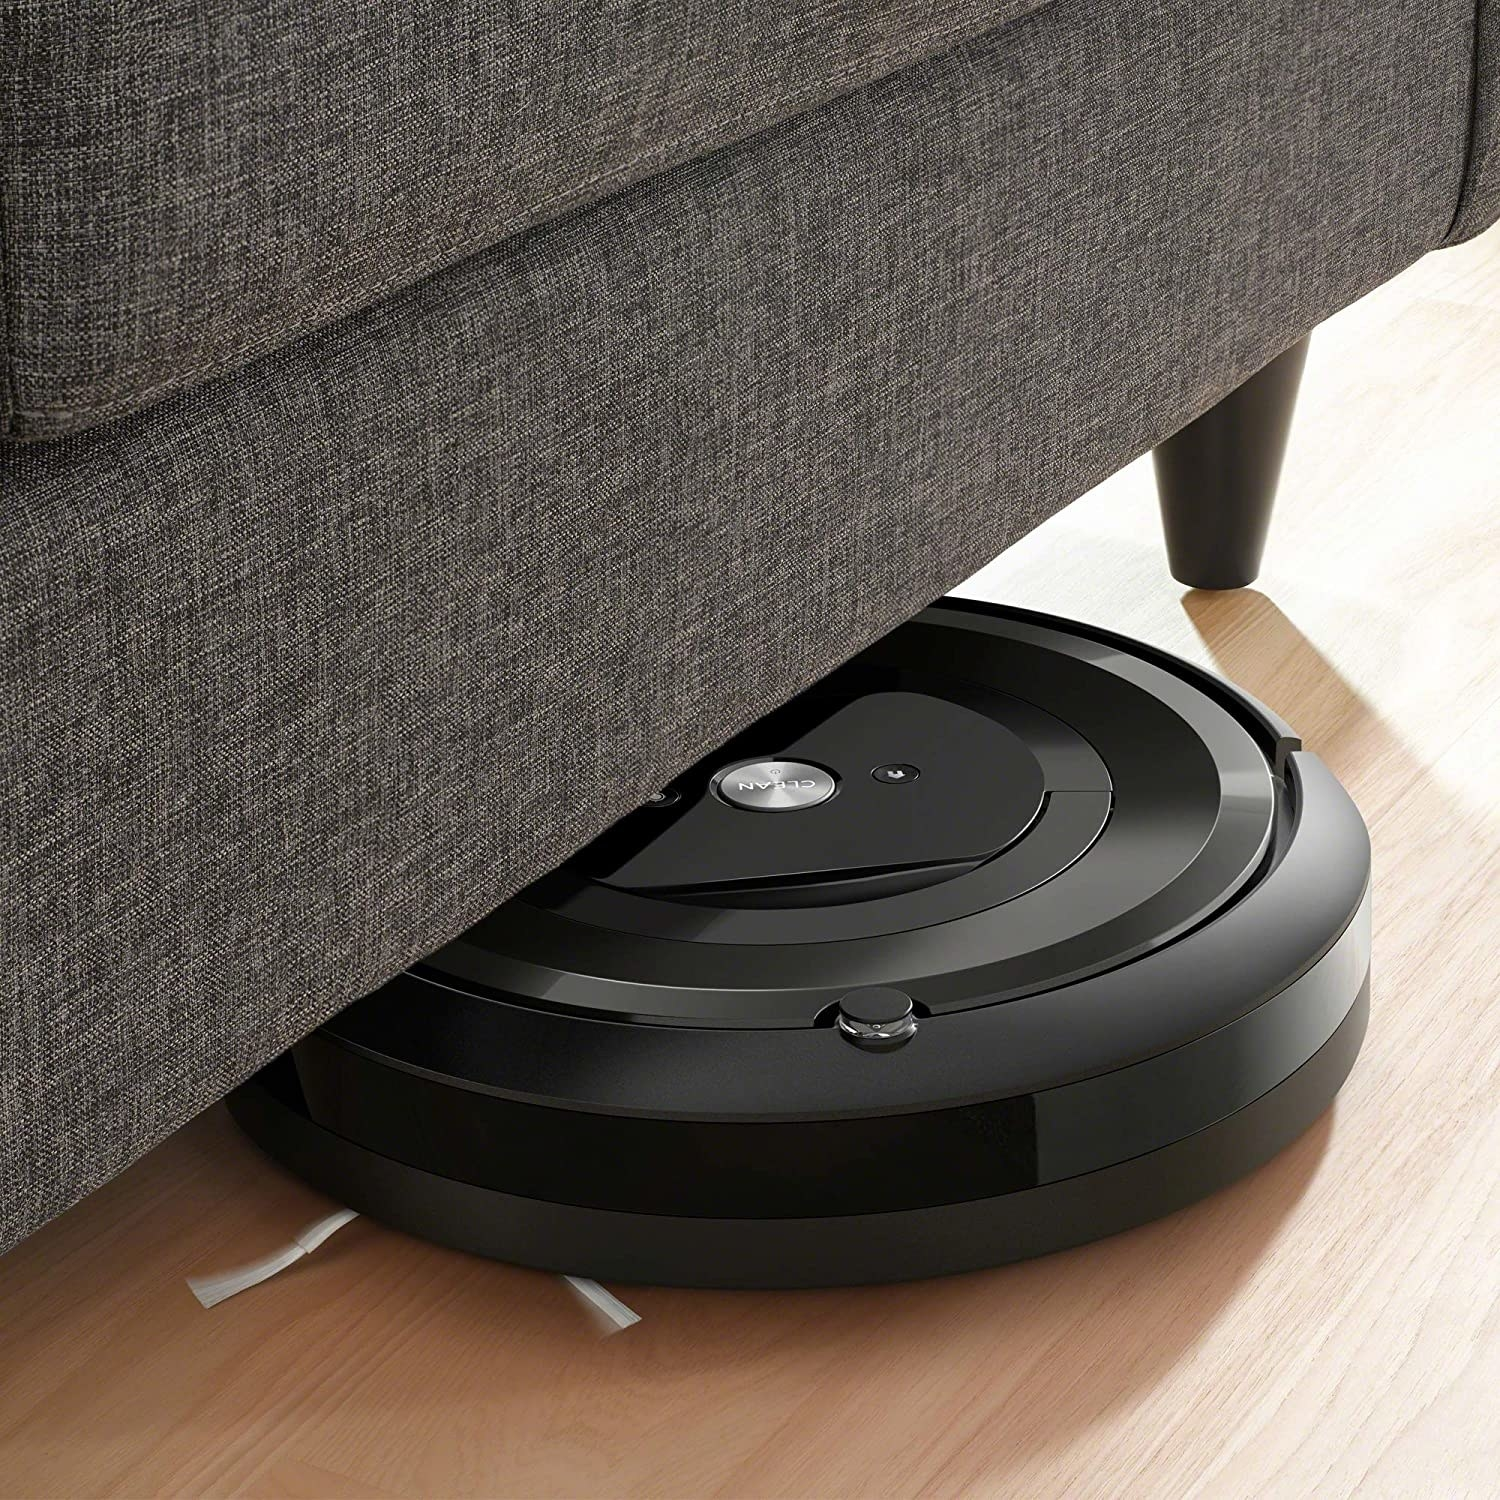 The vacuum under a couch